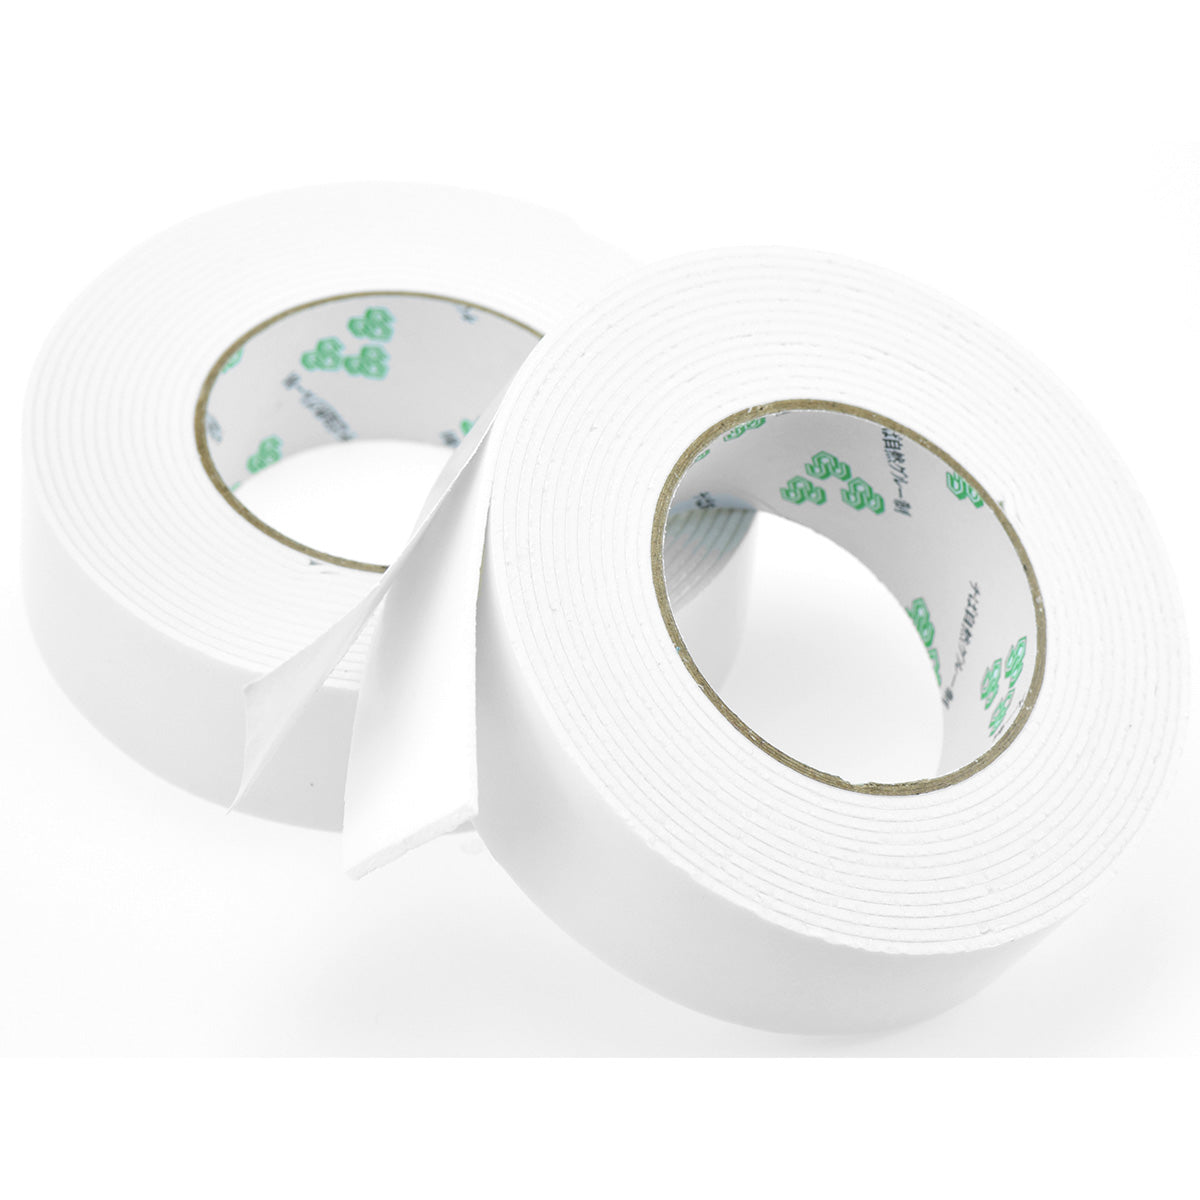 Pack of 2 Double Sided White Foam Tape Very Sticky Leaves Residue